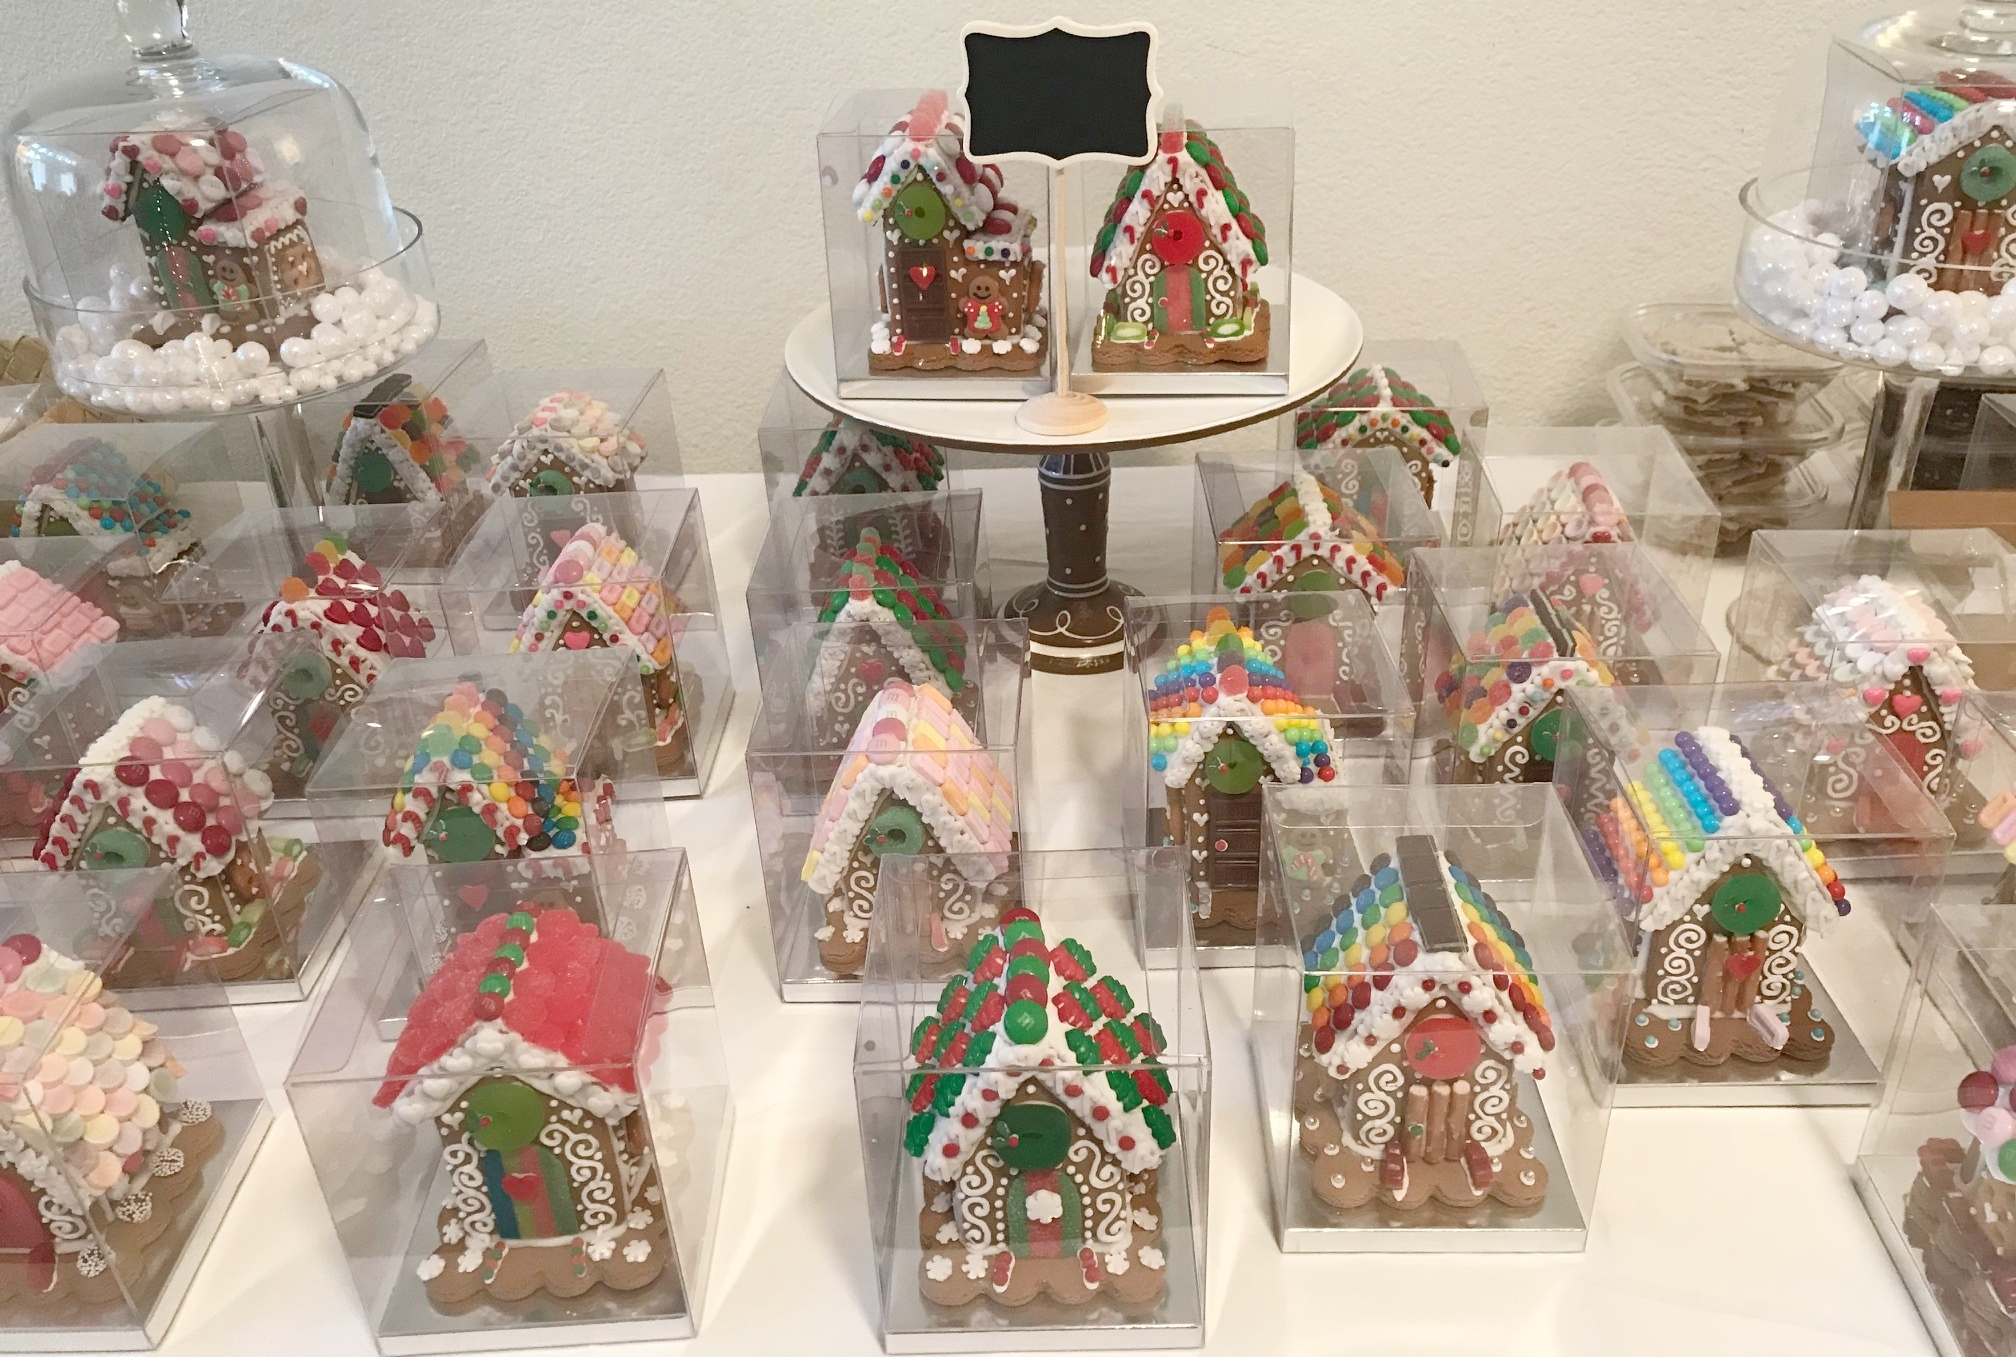 Gingerbread Houses by Zoe, Hawaii